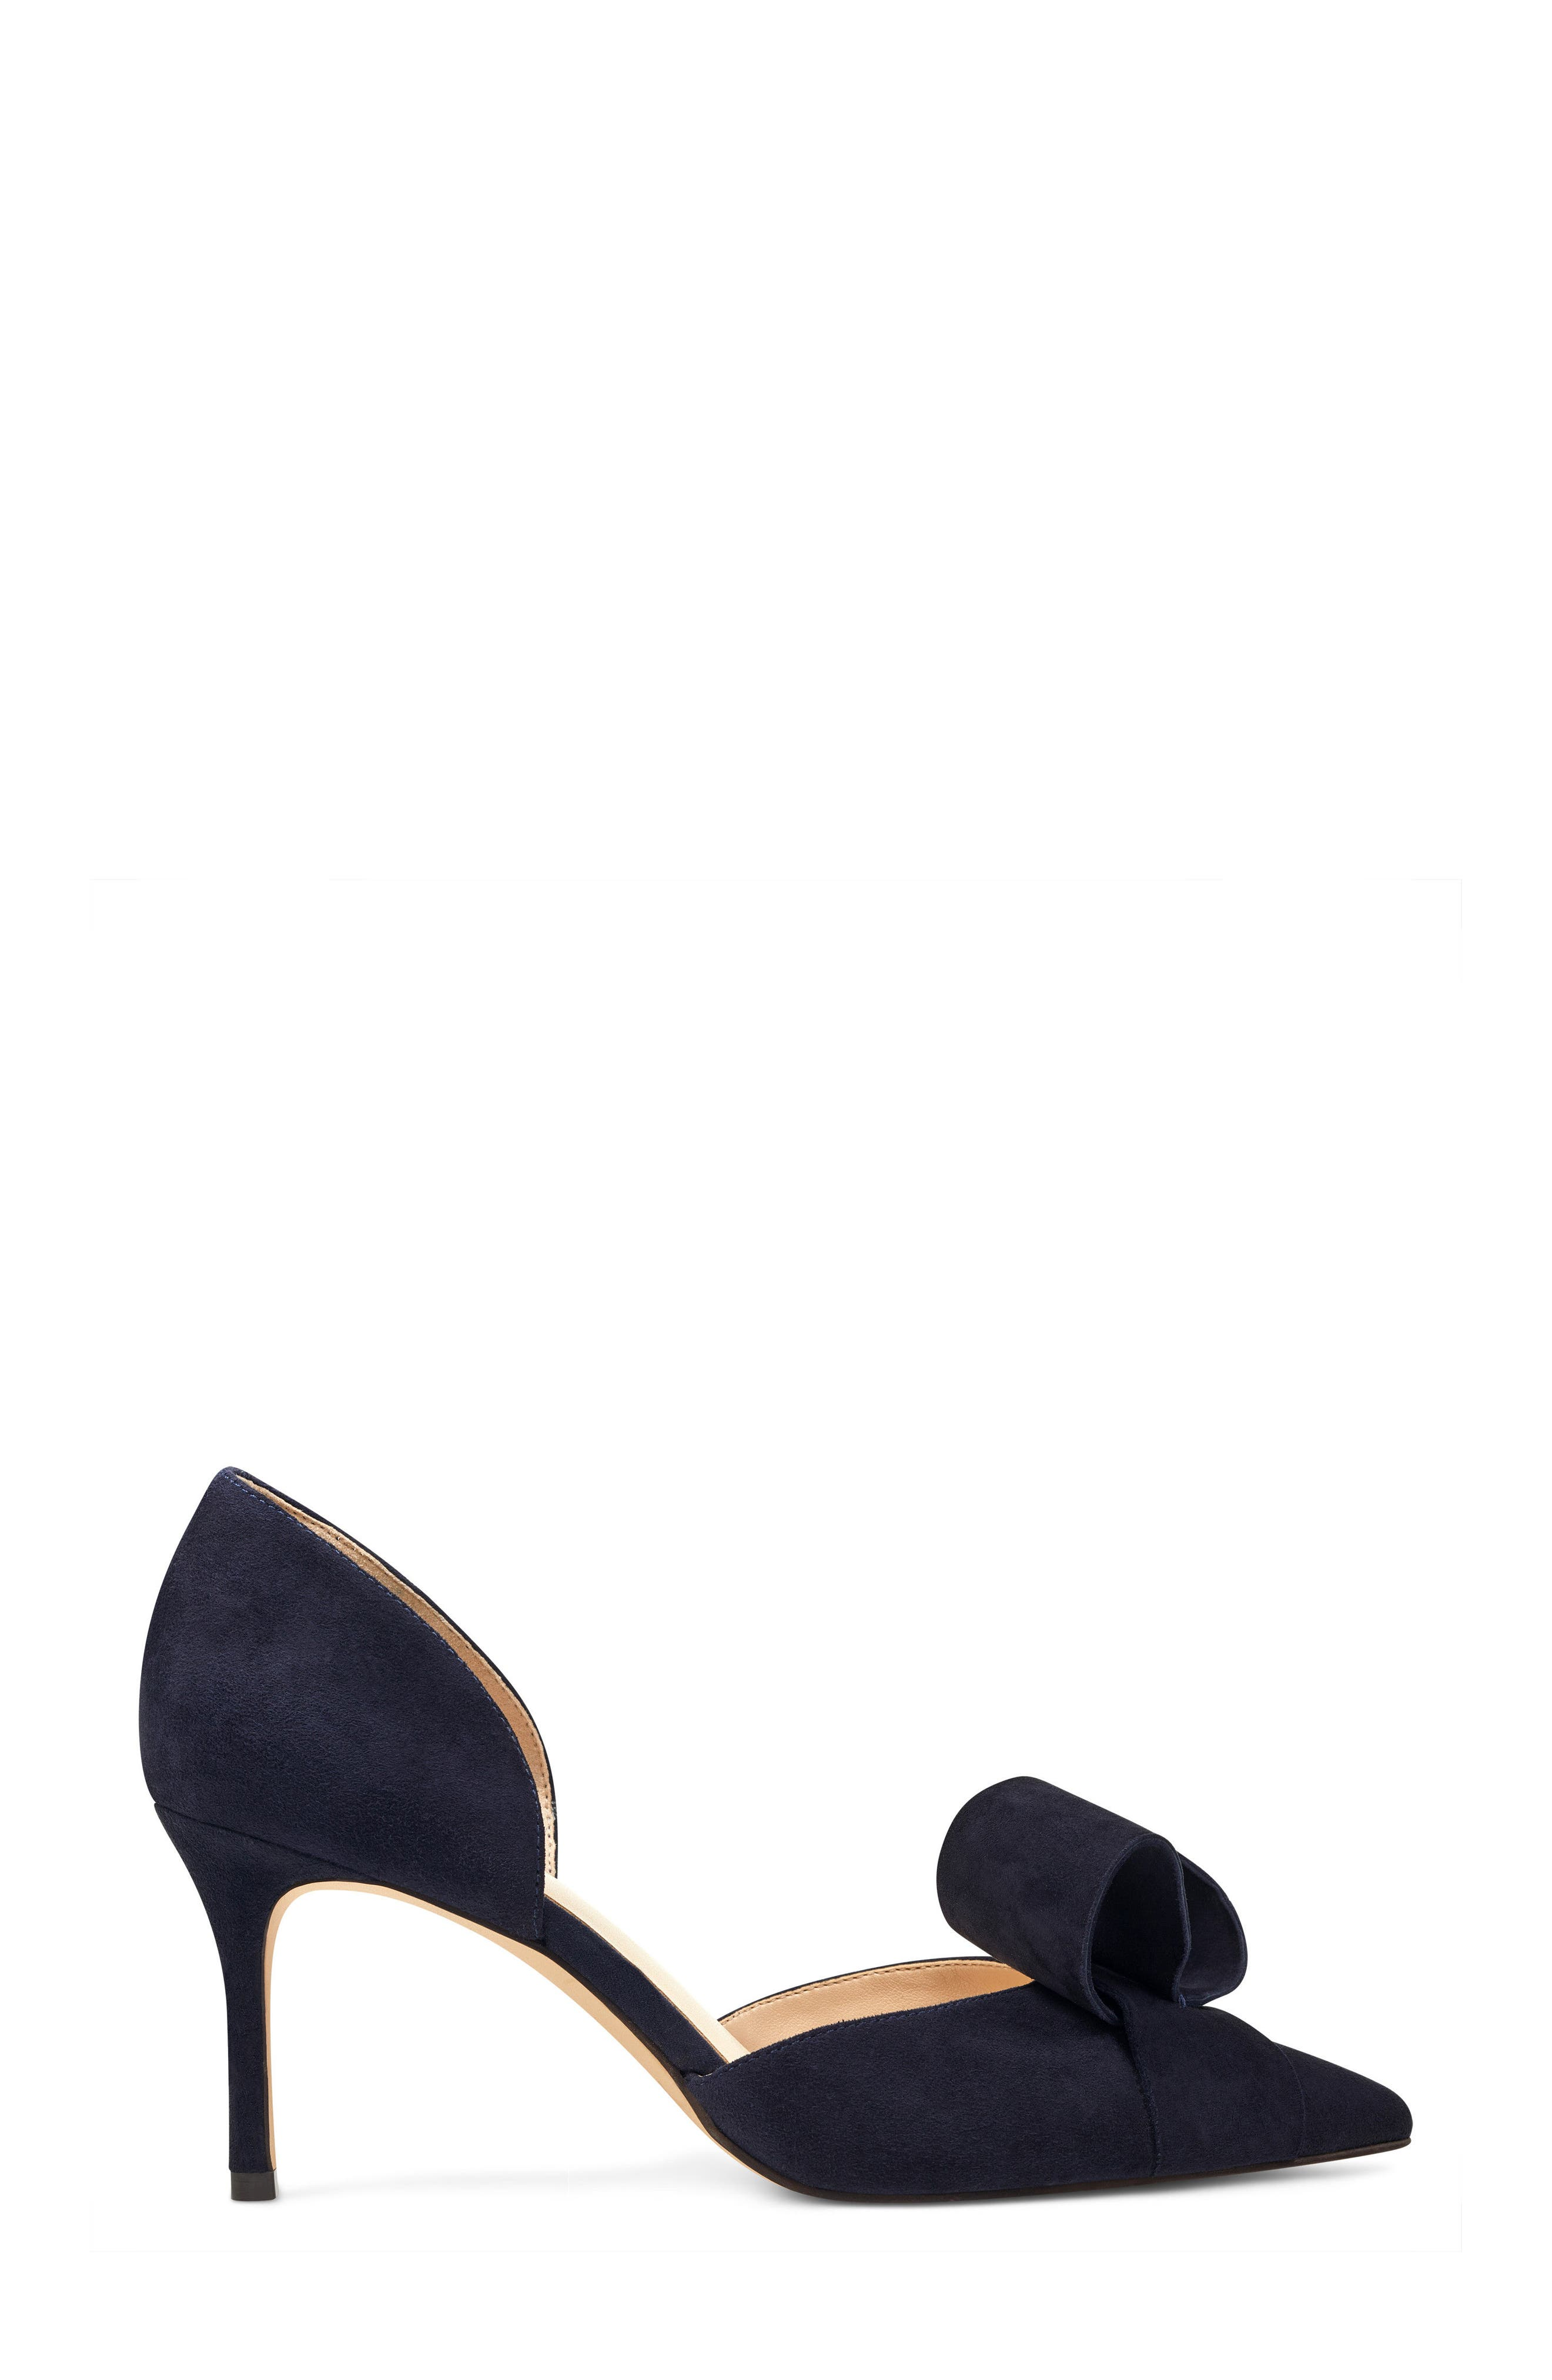 McFally d'Orsay Pump,                             Alternate thumbnail 3, color,                             NAVY SUEDE